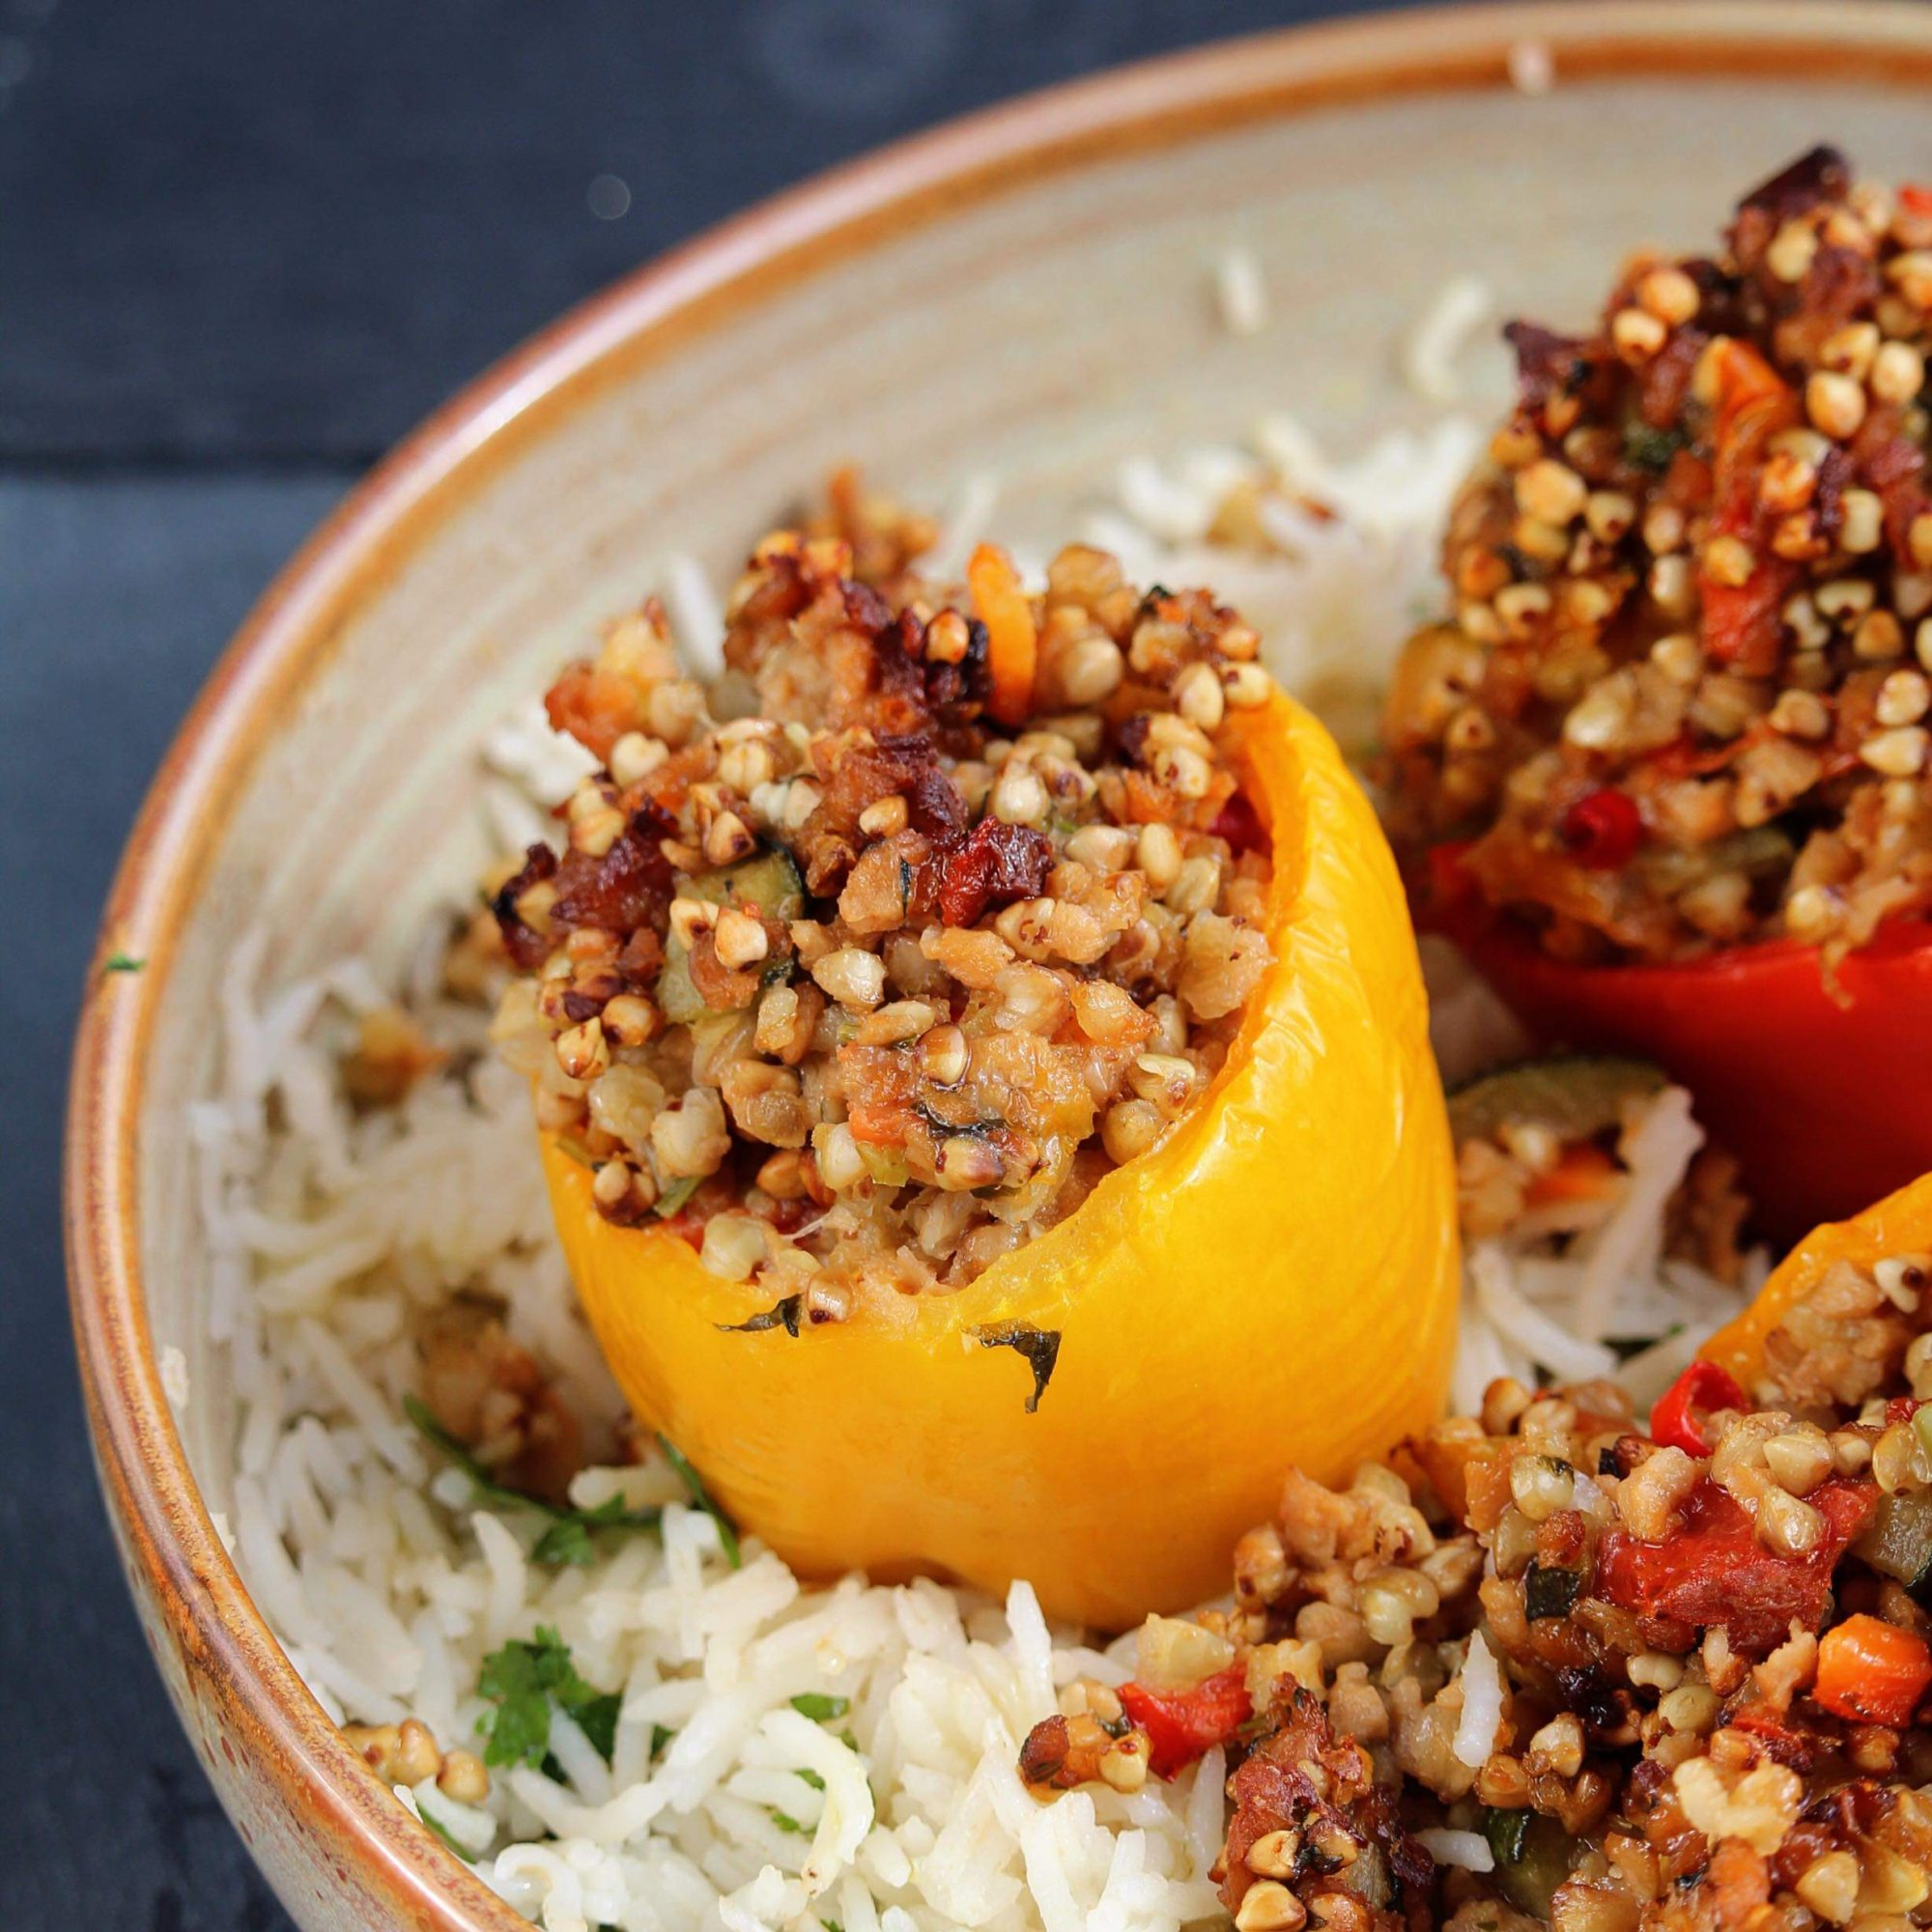 bell peppers stuffed with buckwheat